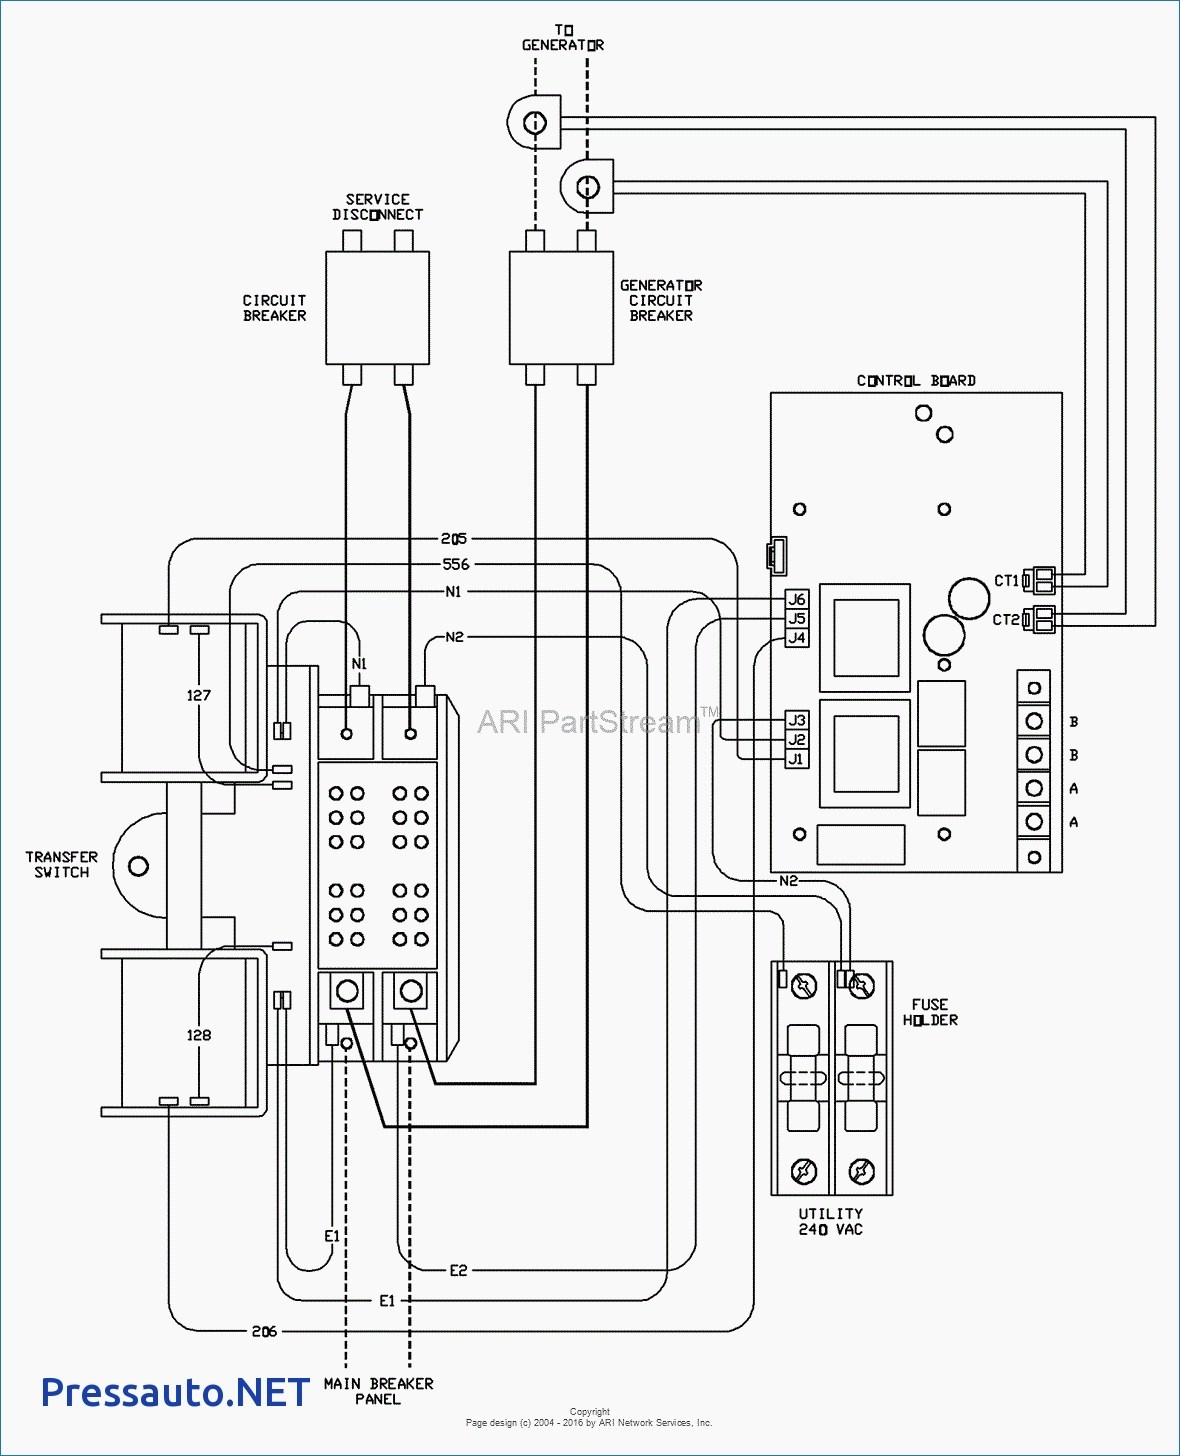 Whole House Generator Transfer Switch Wiring Diagram